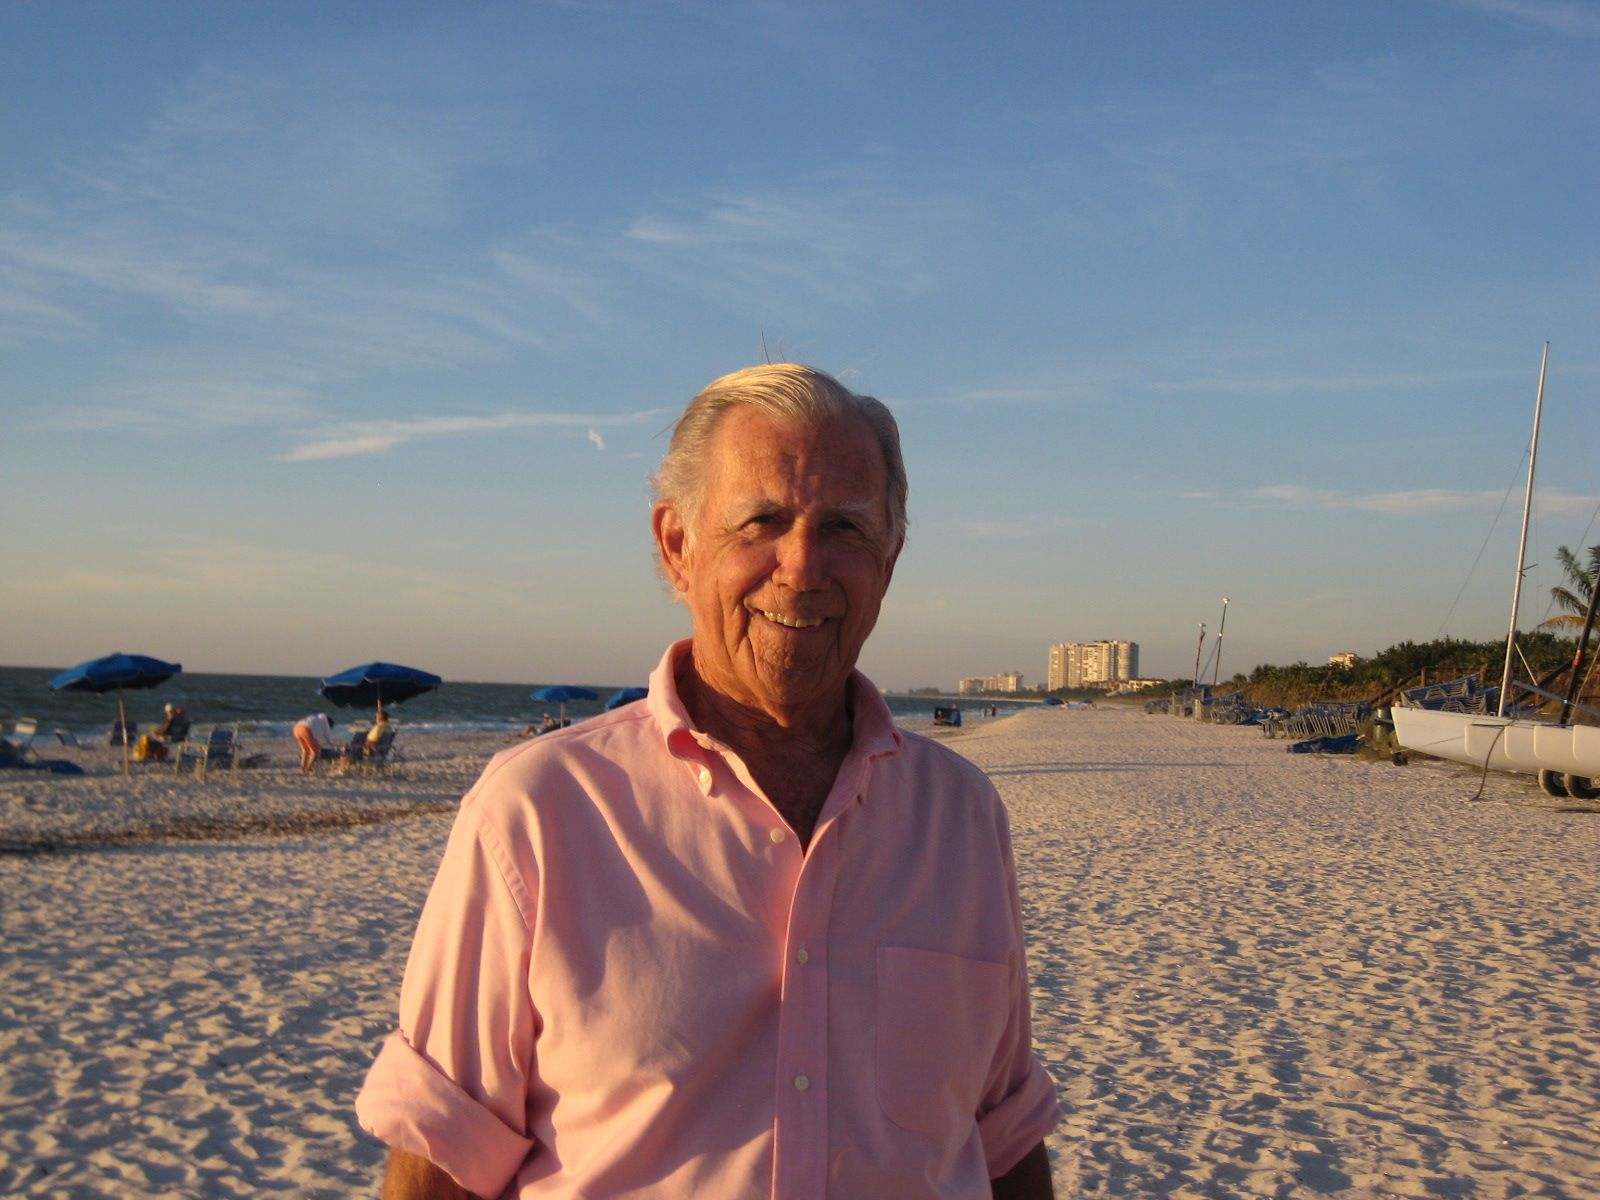 Mac Perkins '63 in Naples, FL on November 12, 2014.